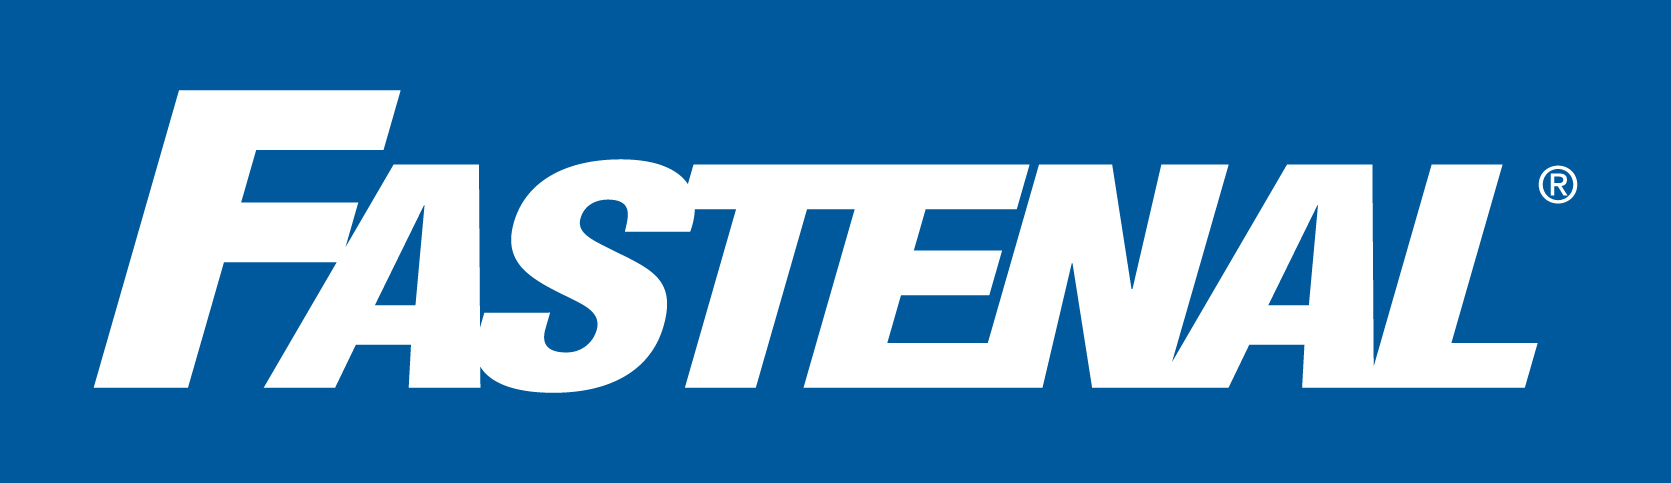 Fastenal Company (FAST)'s Q4 and FY2014 Earnings Results Conference Call Transcript - Insider Monkey